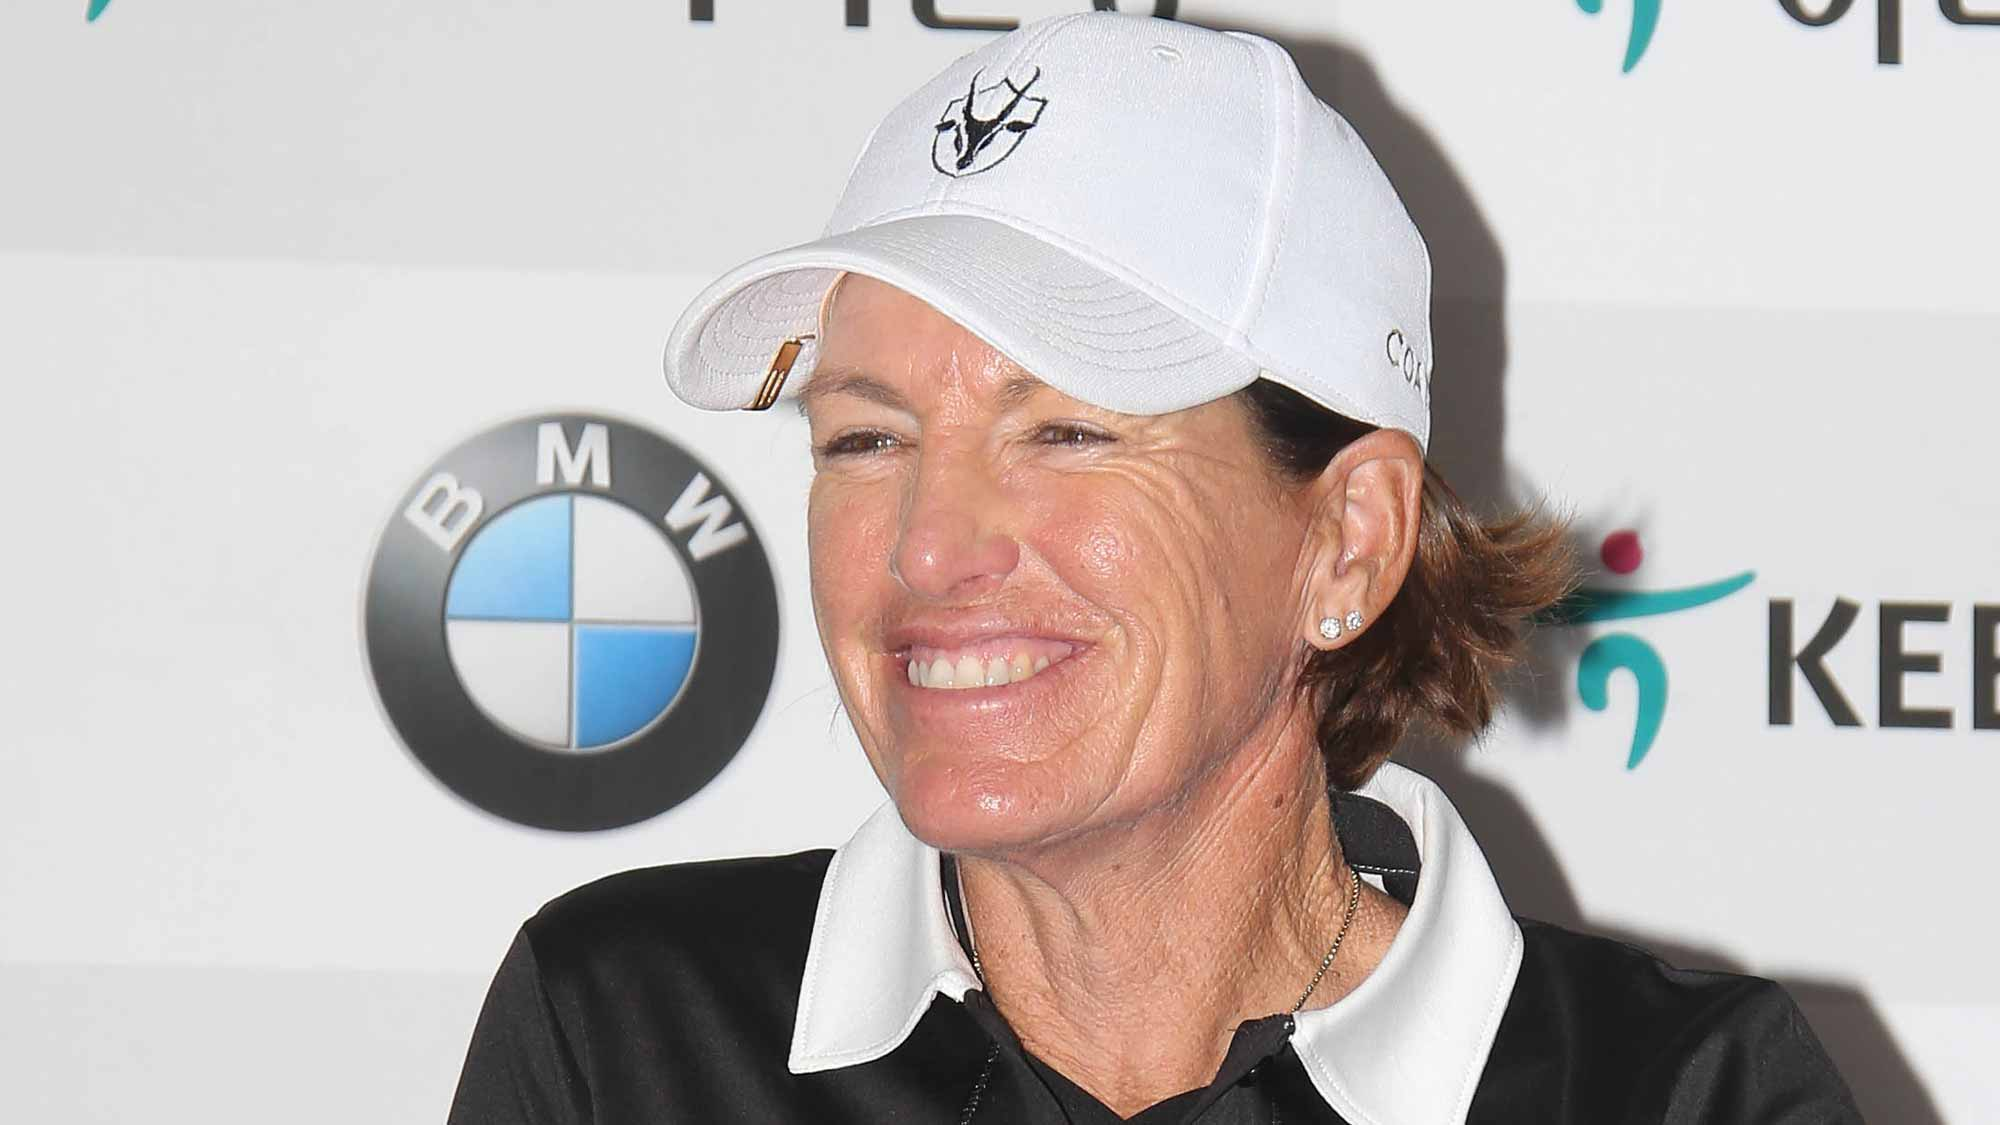 Juli Inkster Addresses The Media During A Pre-Tournament Press Conference at LPGA KEB Hana Bank Championship